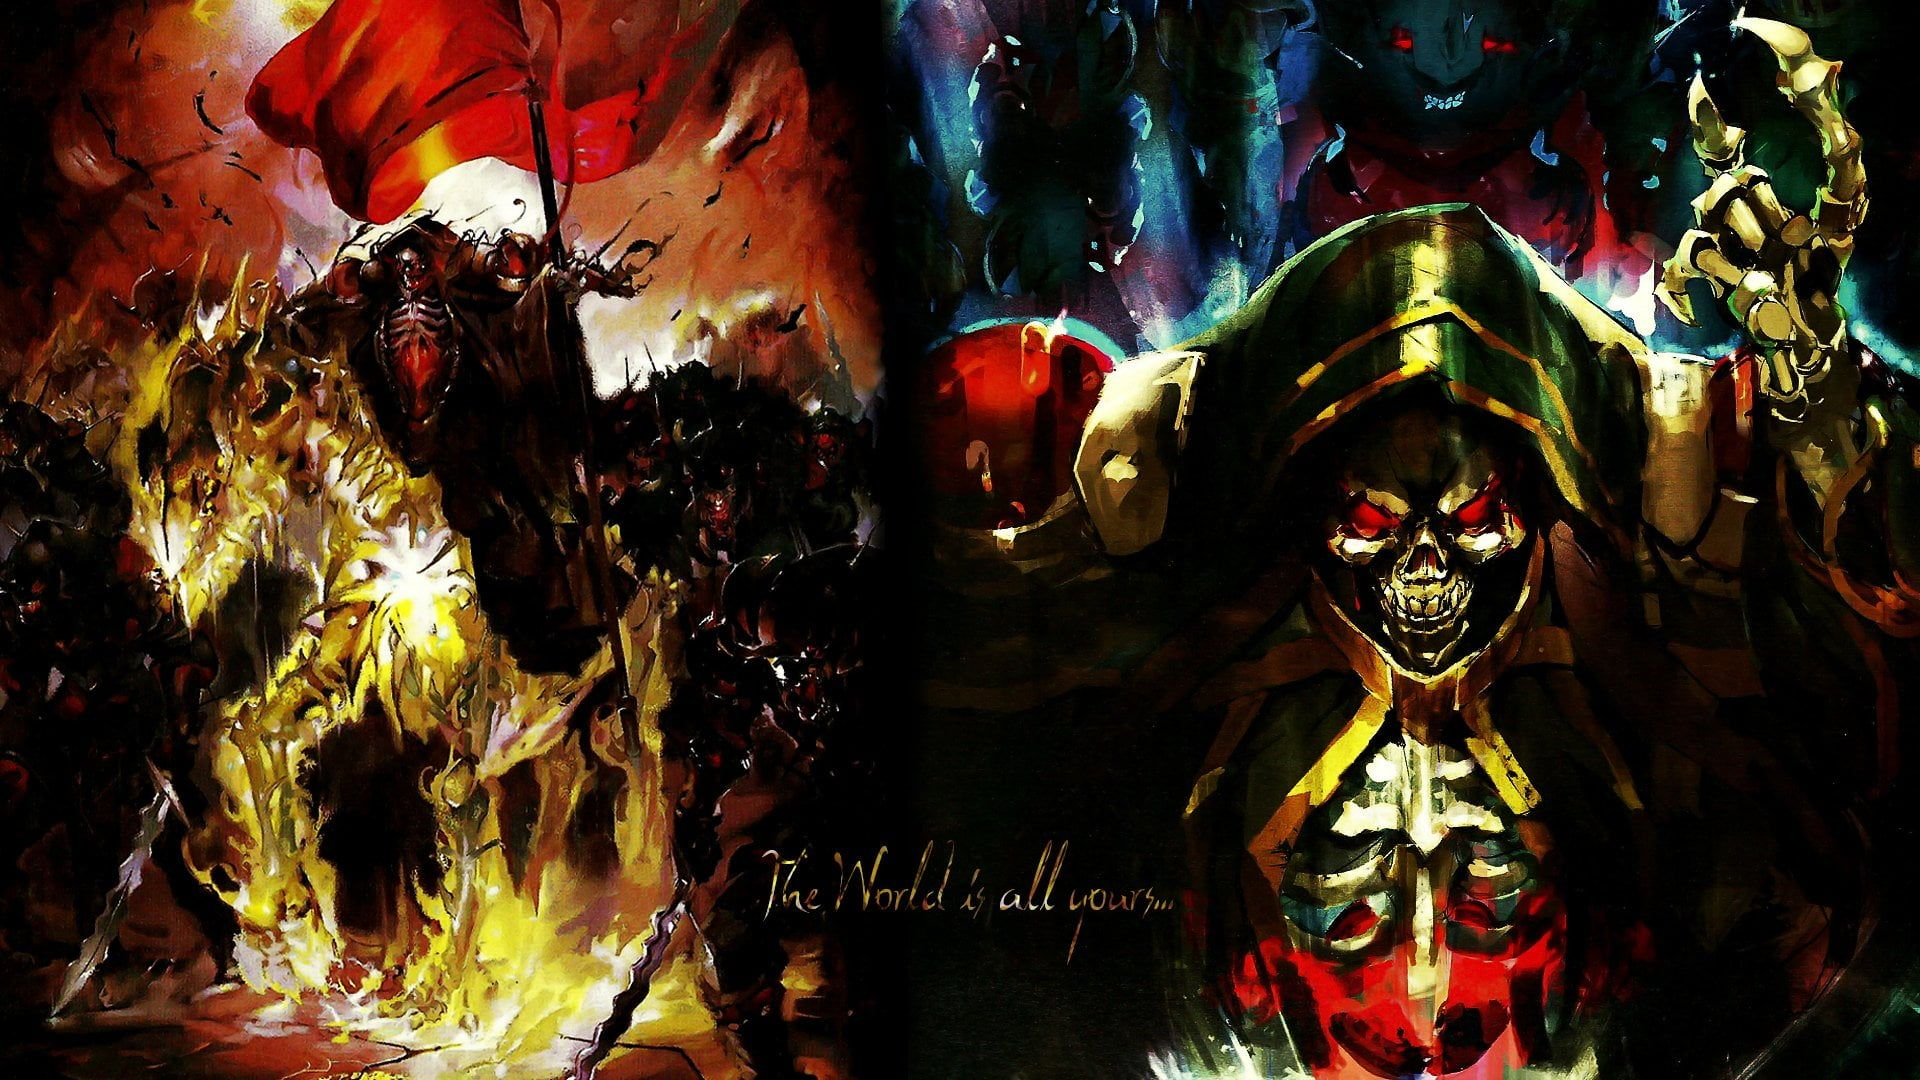 Anime Overlord Ainz Ooal Gown Overlord Anime 1080p Wallpaper Hdwallpaper Desktop In 2020 Anime Free Anime Anime Wallpaper